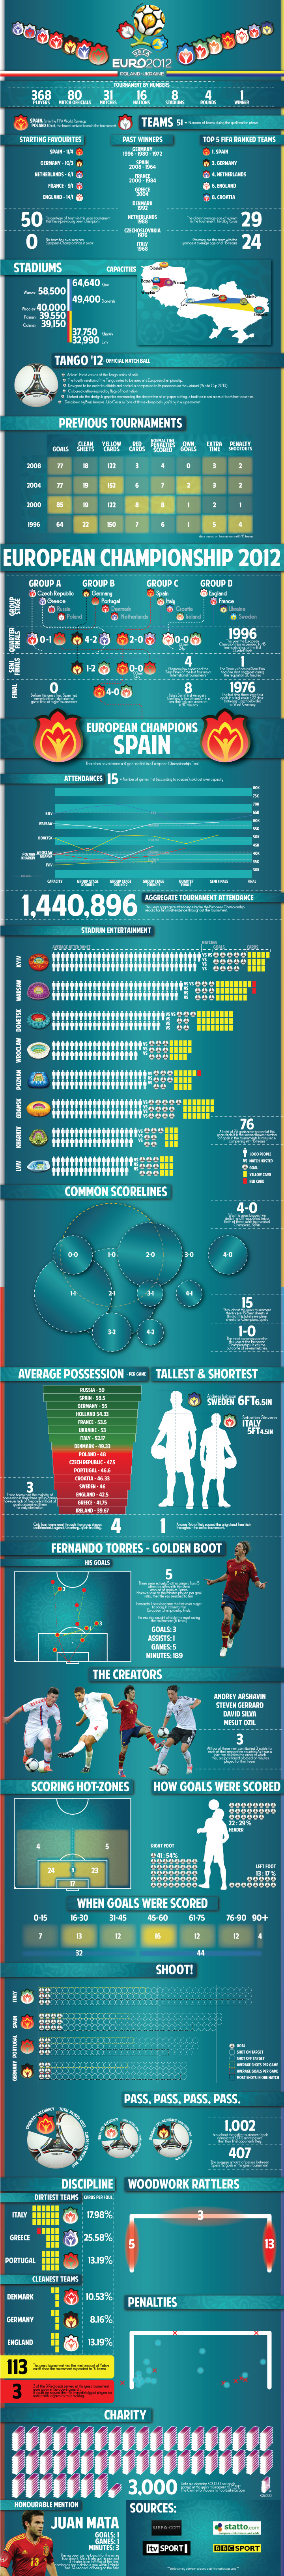 Euro 2012 Statistical Review